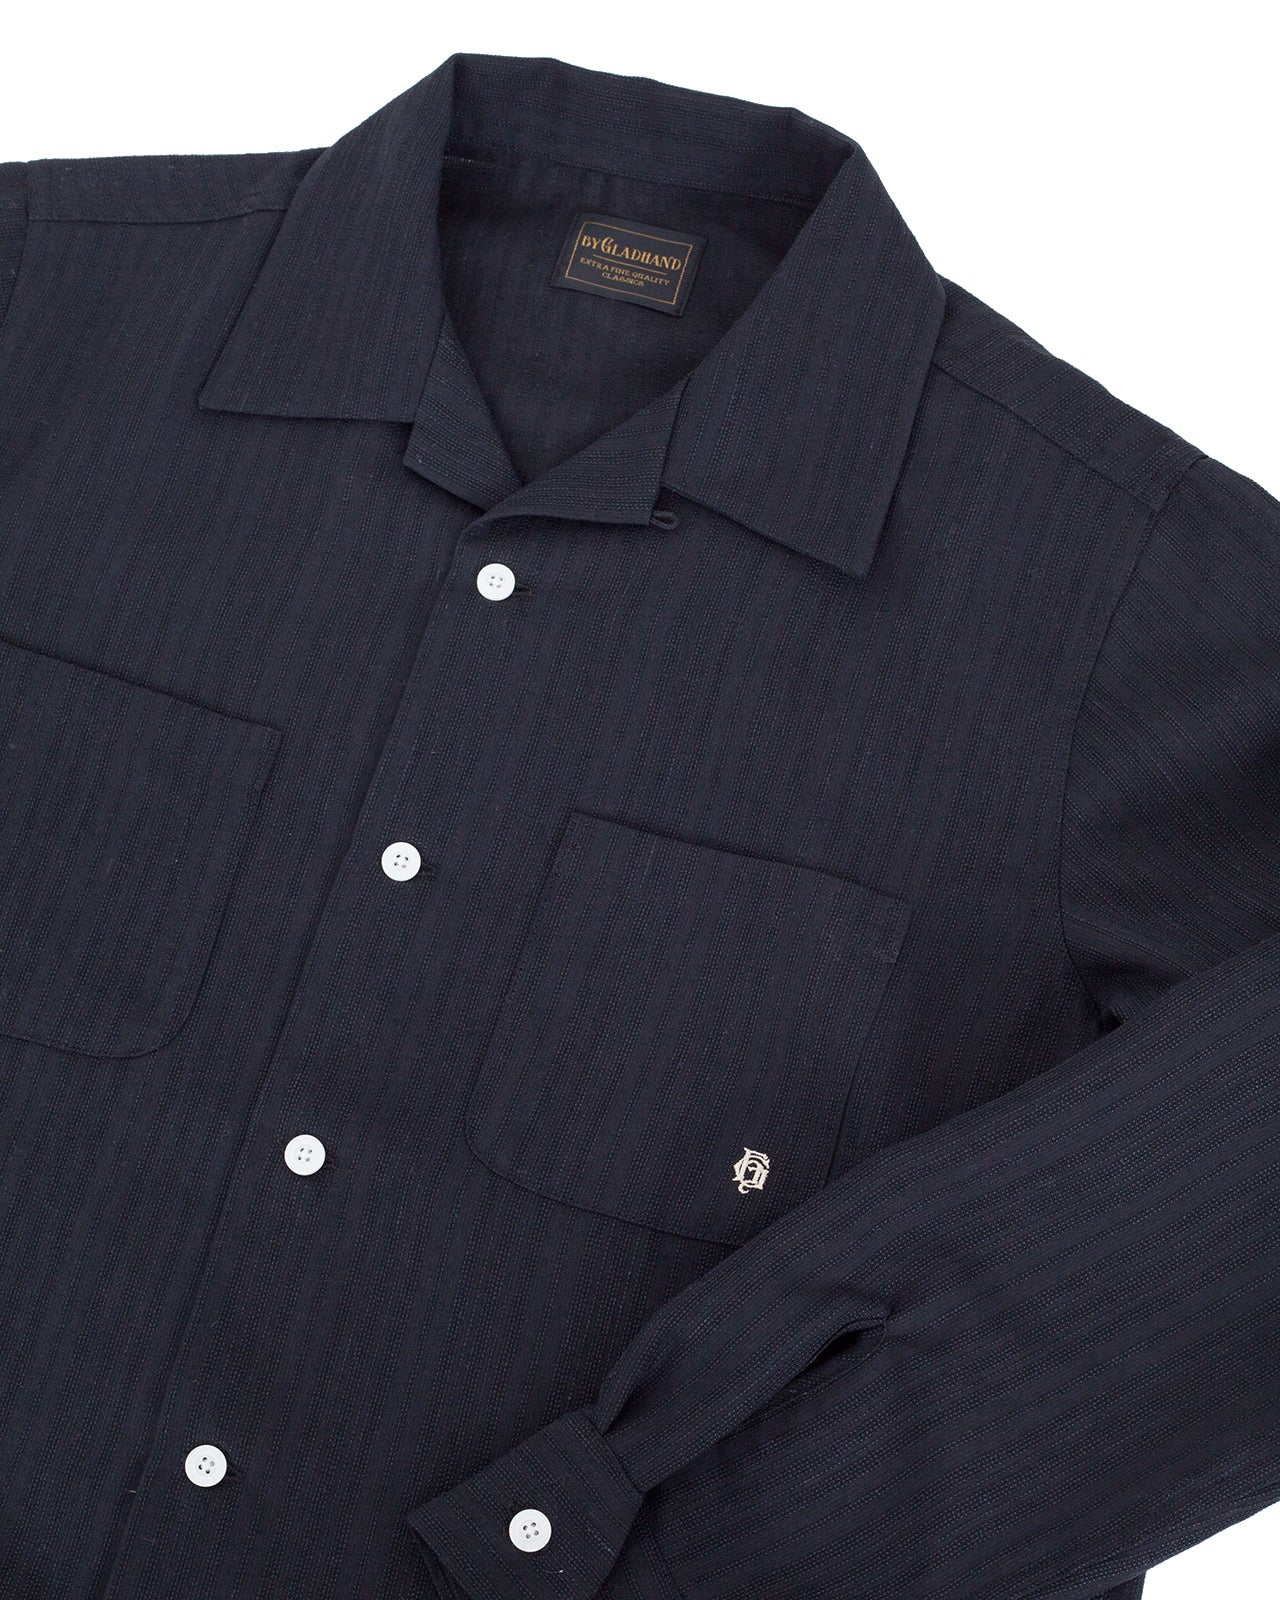 By Glad Hand, Voyage Shirt, Black